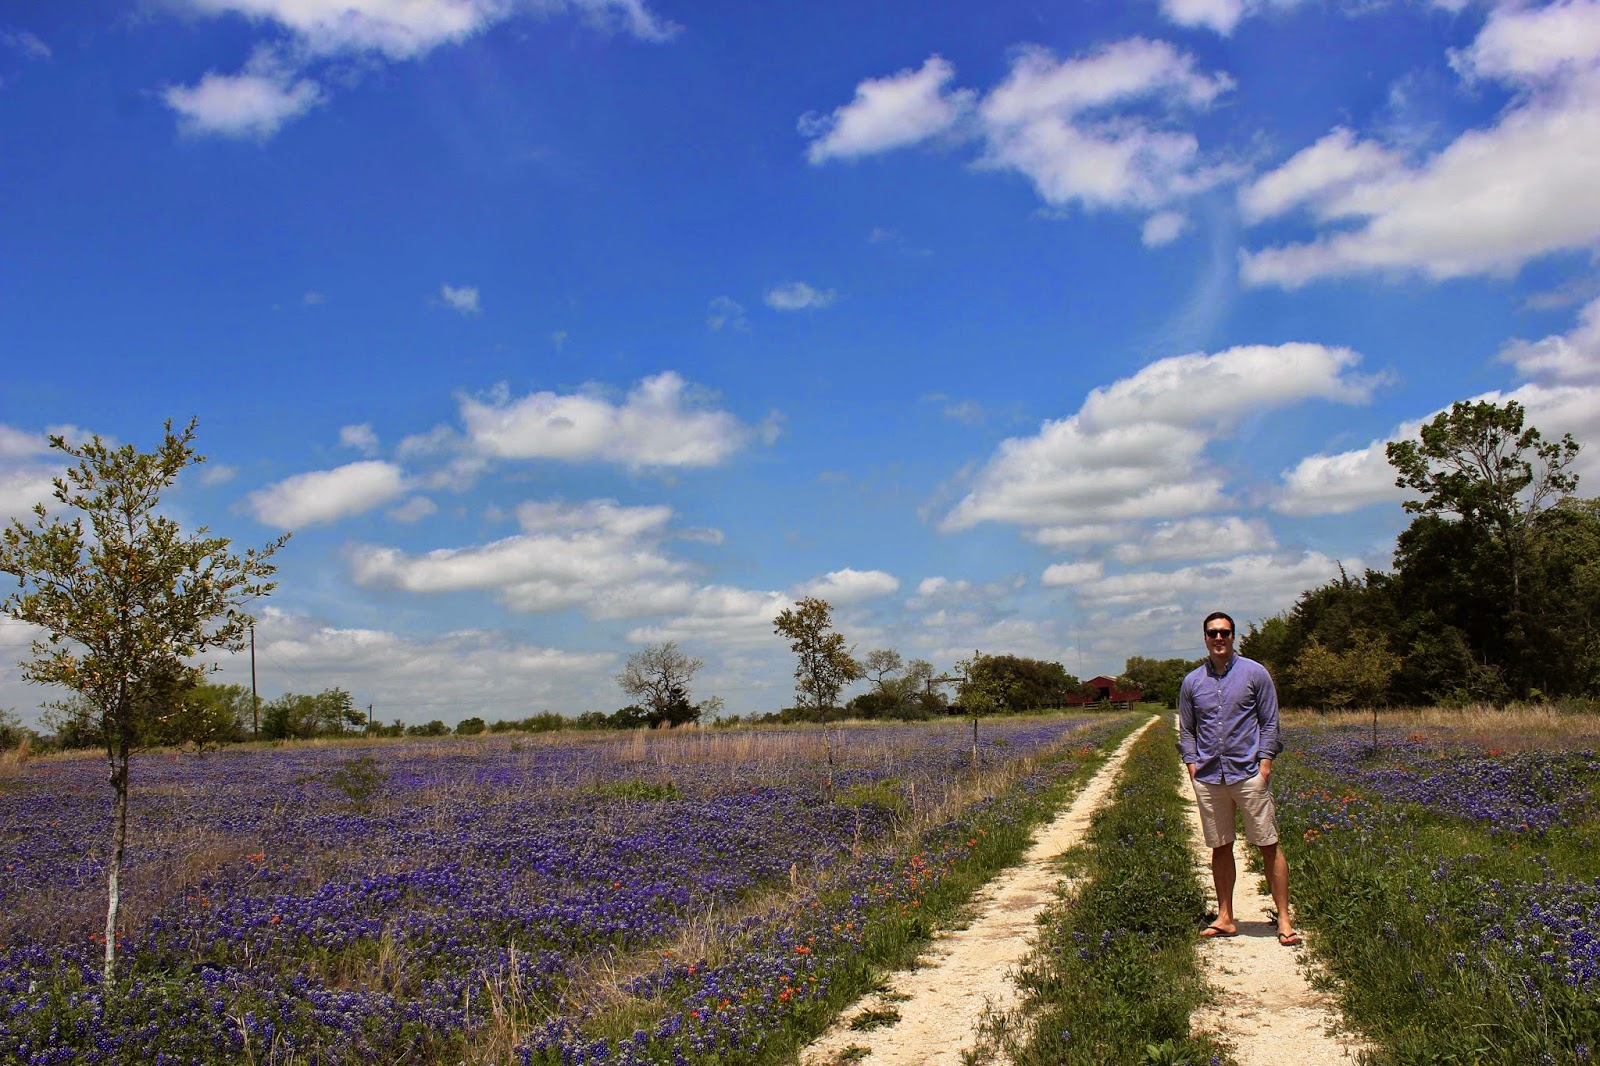 Texas Bluebonnet Season